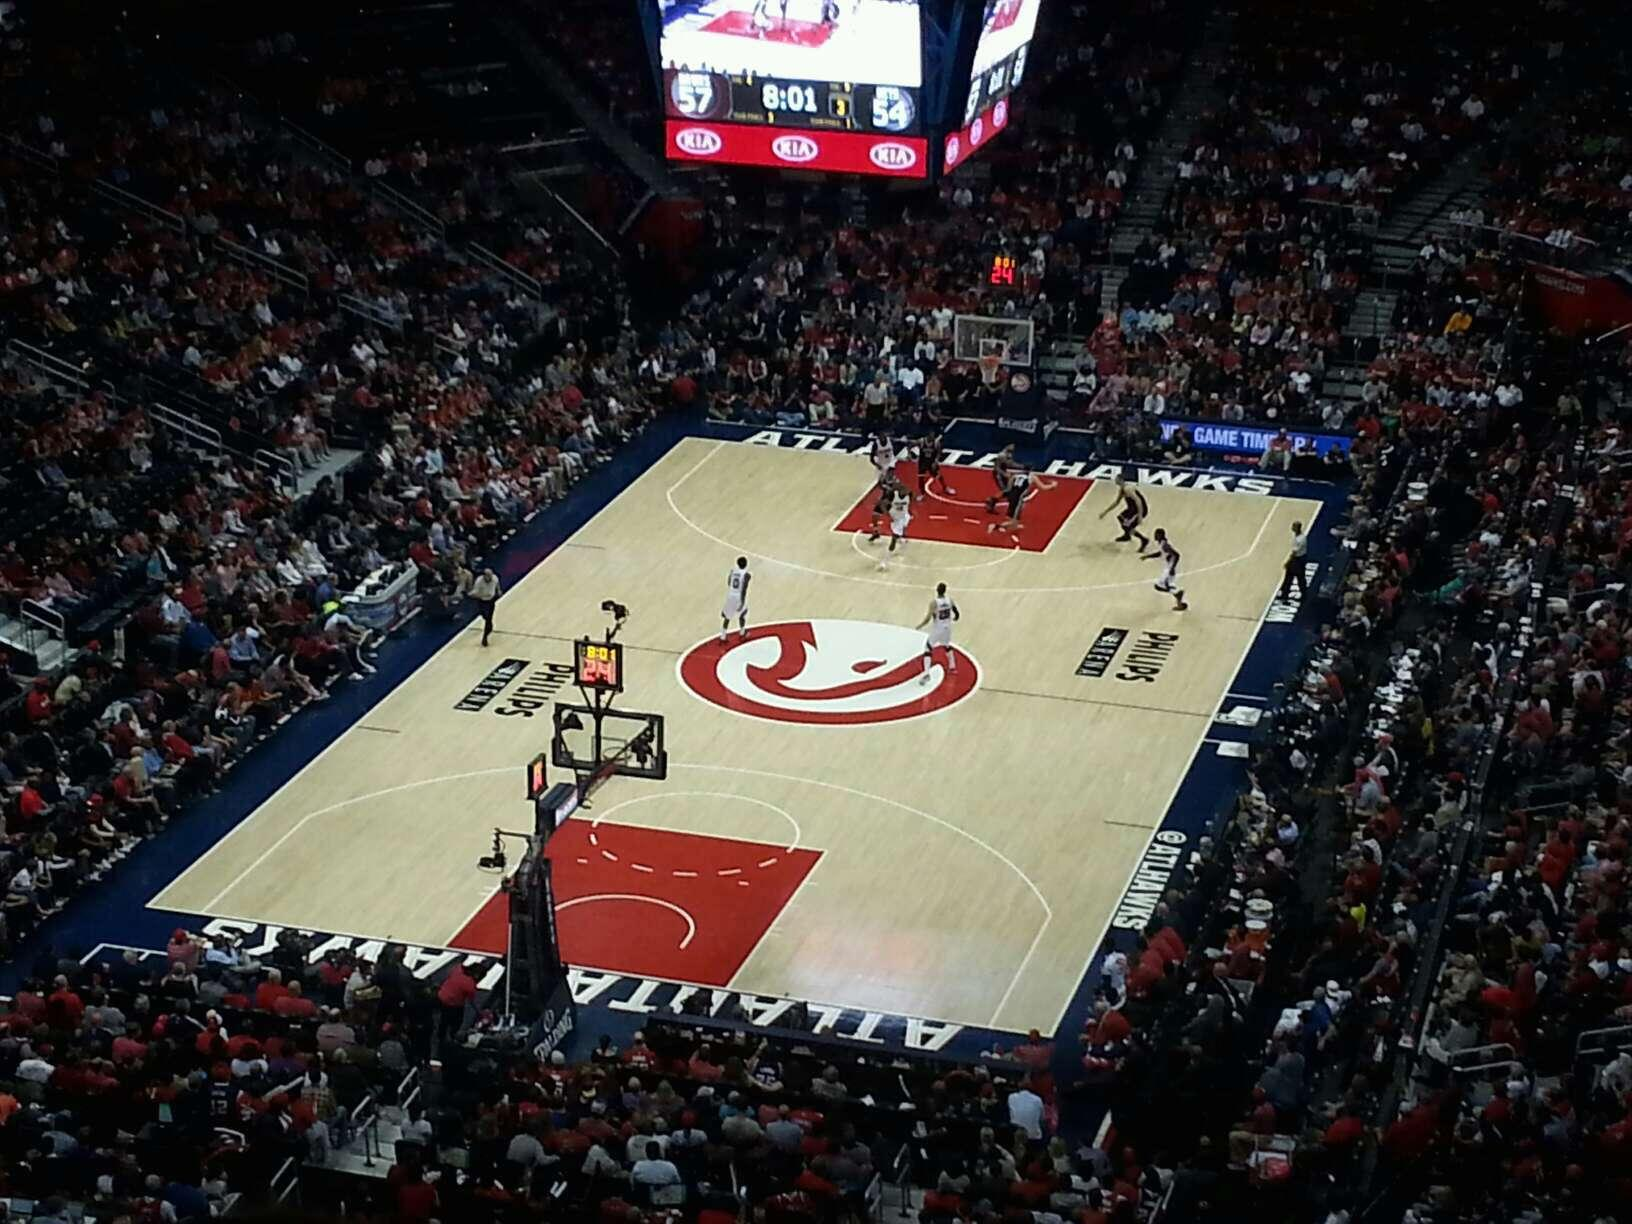 Philips Arena Section 317 Row S Seat 11